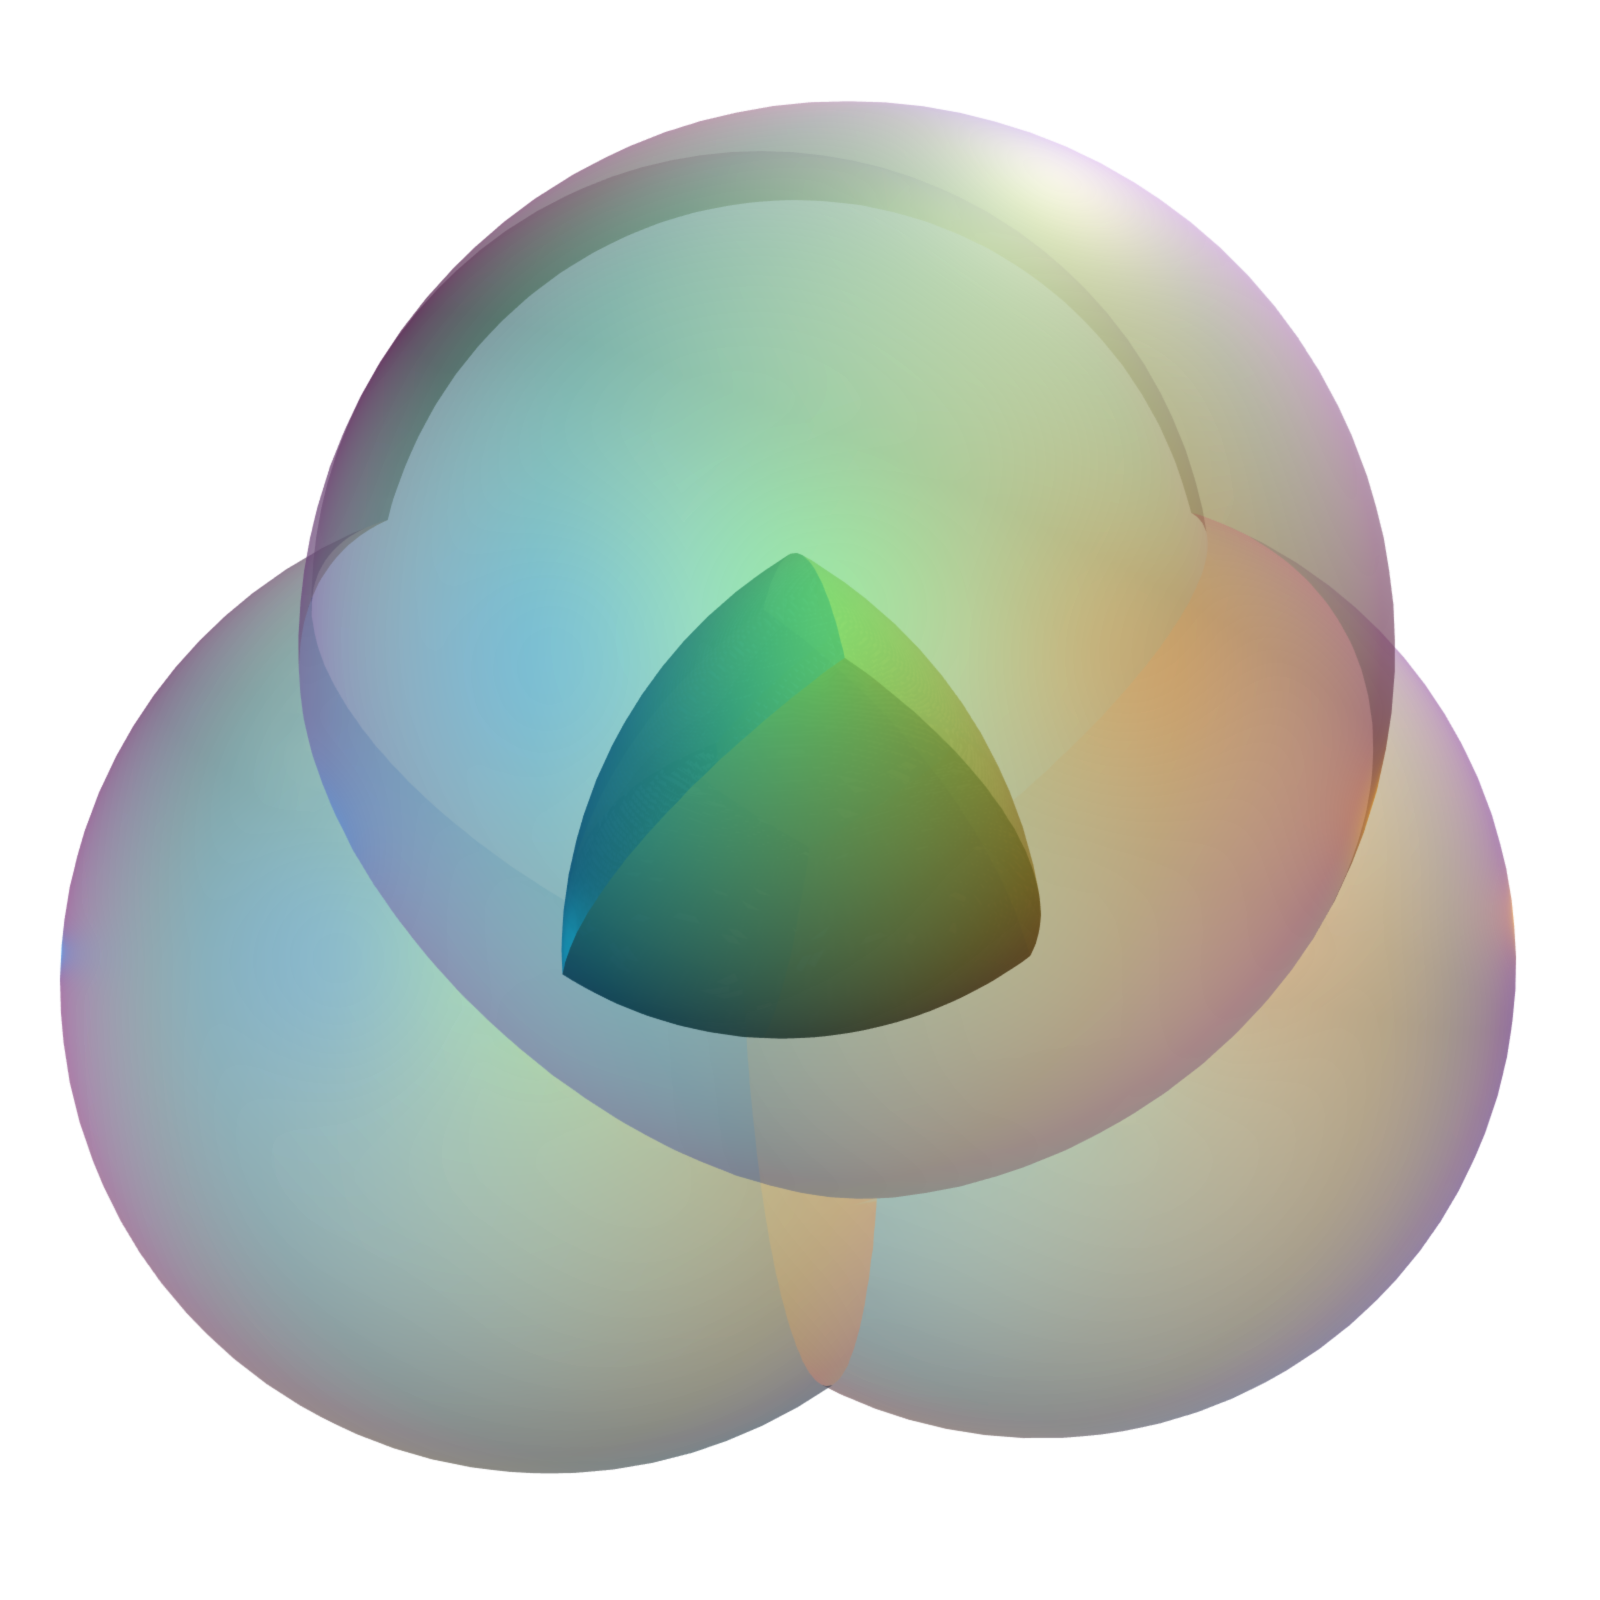 Cone Clipart Sphere Object Cone Sphere Object Transparent